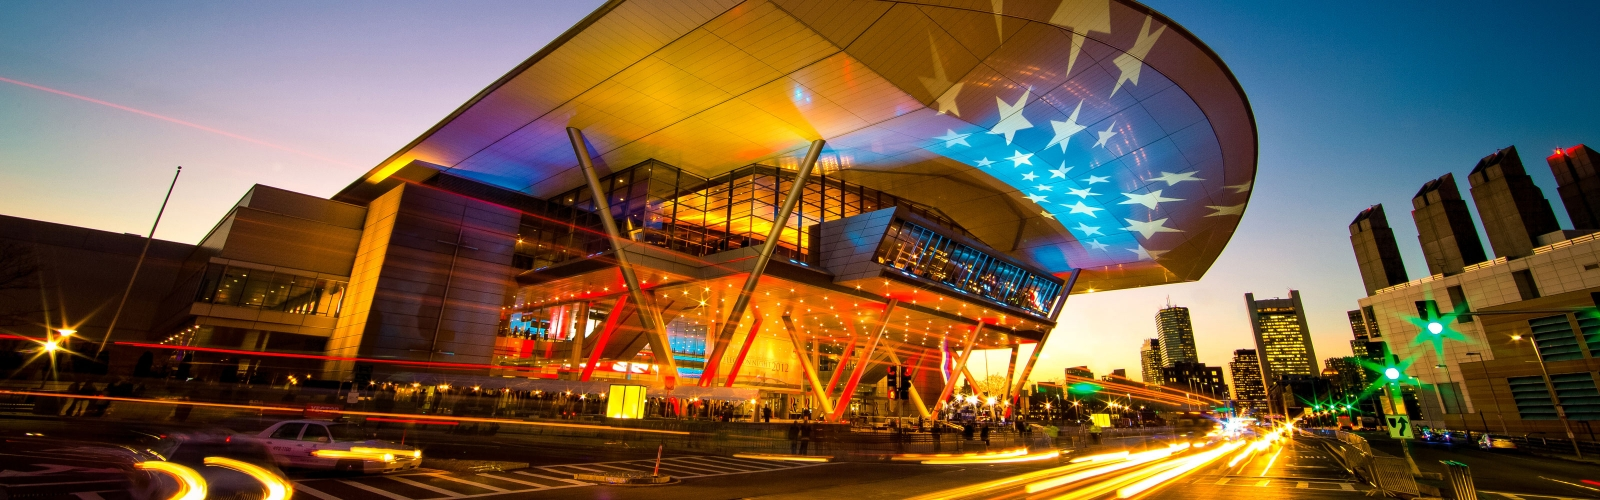 Where to Eat Near the Boston Convention and Exhibition Center (BCEC)